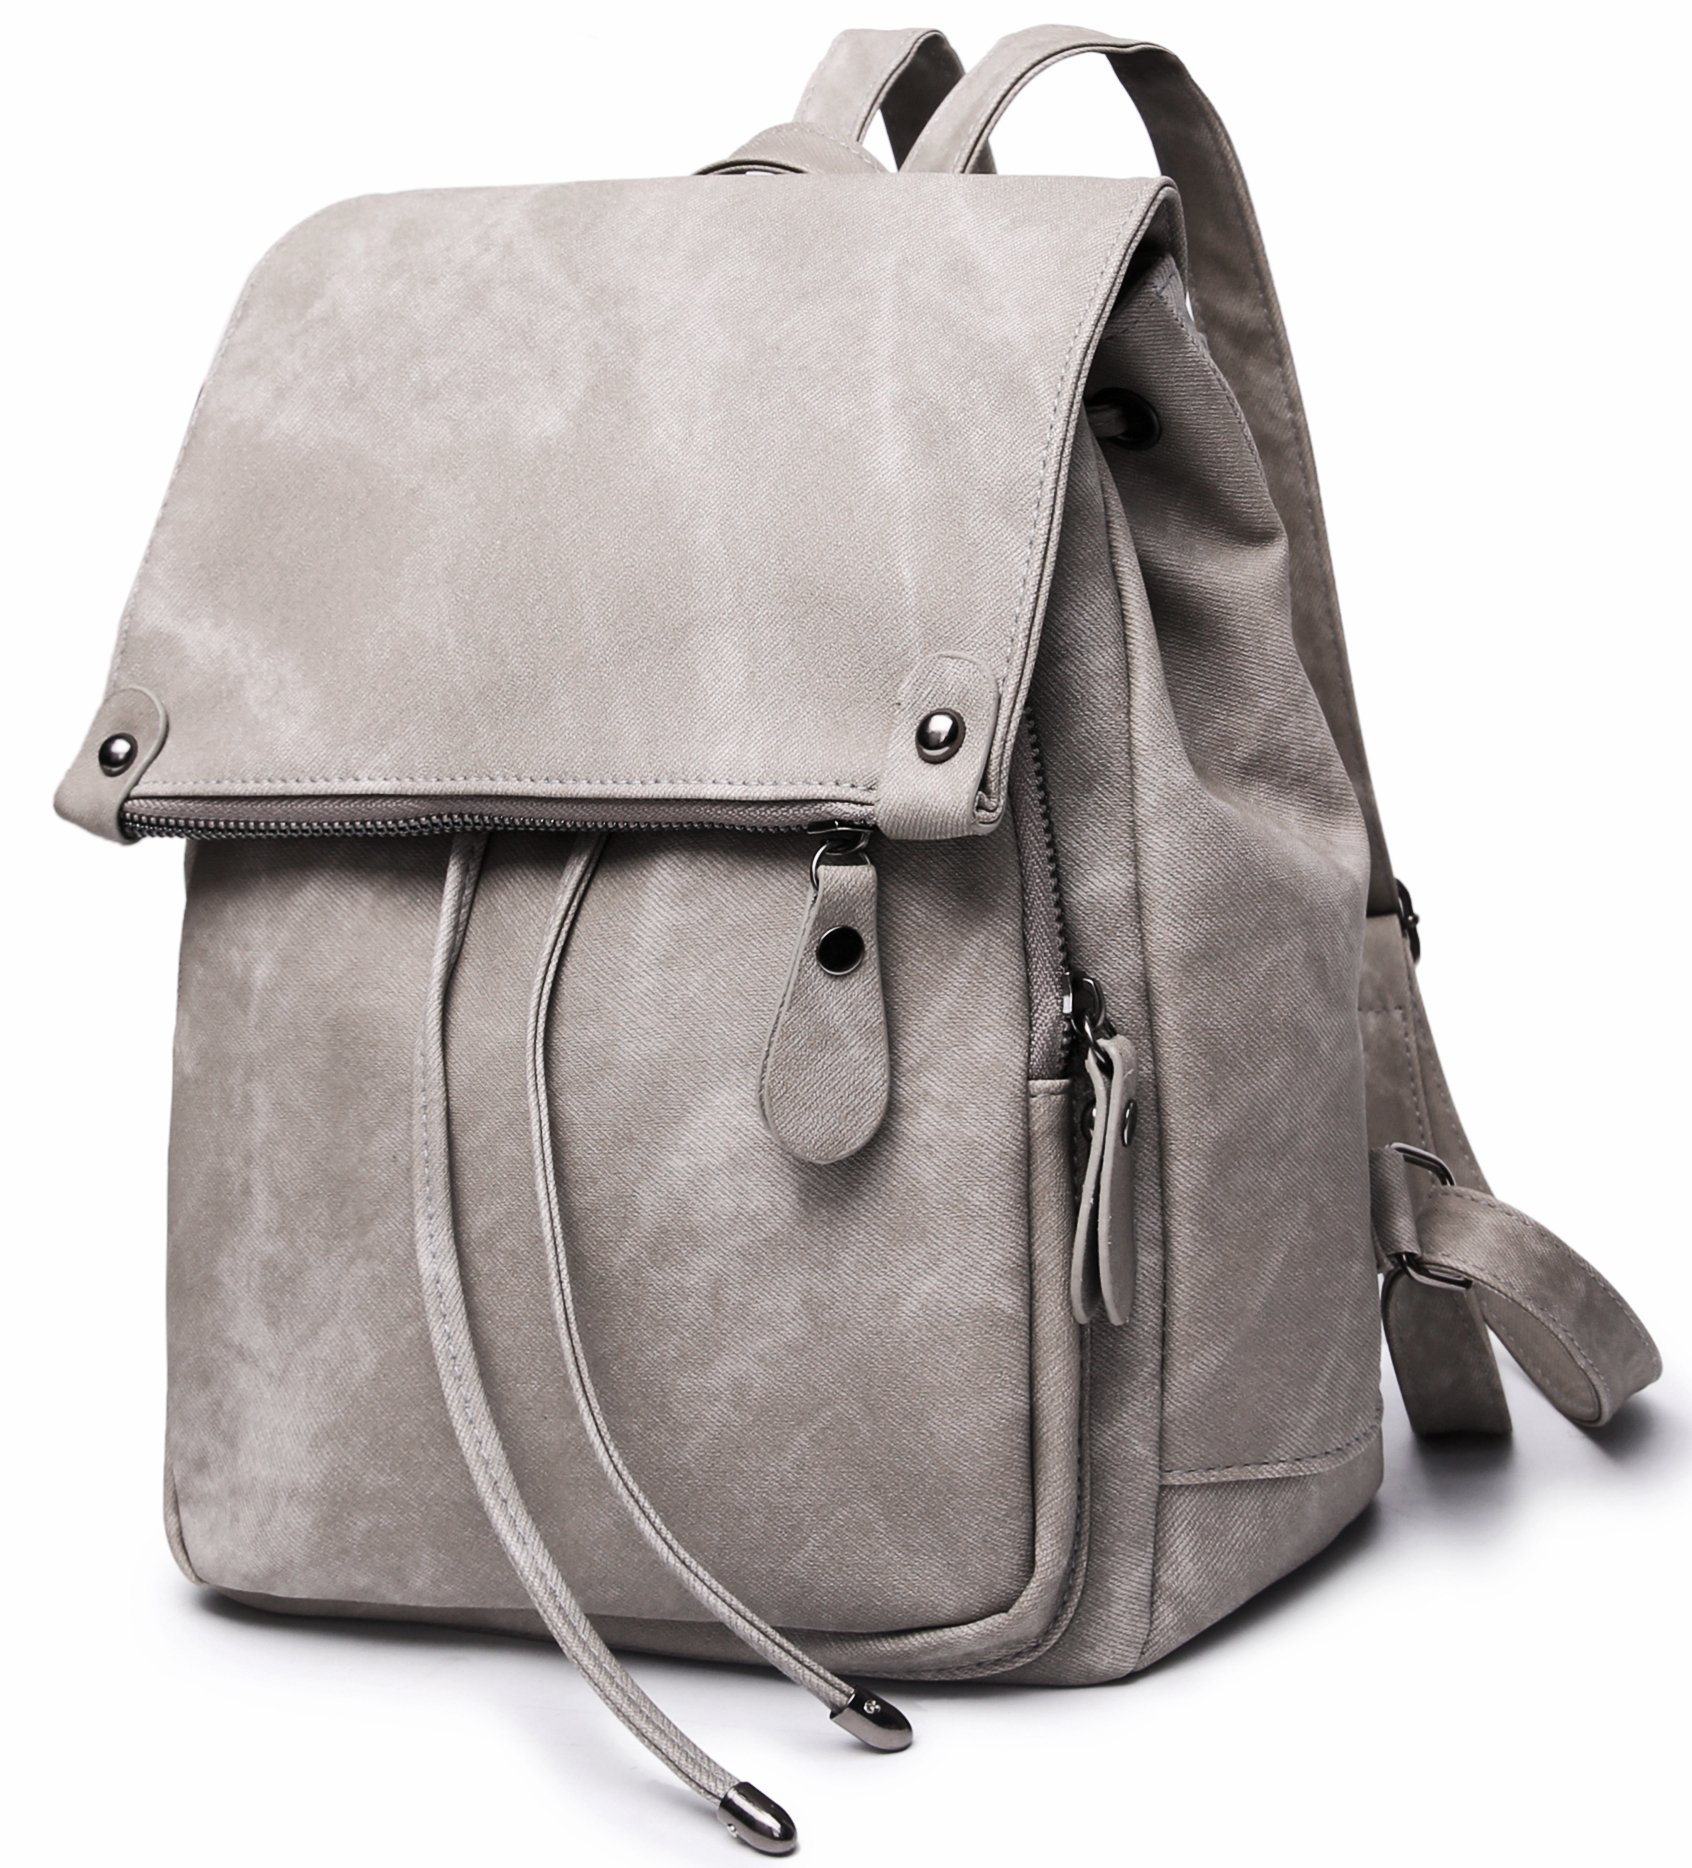 Stylish PU Leather Backpack For Women Lightweight Cute Mini Backpack For Women Fashion Design Drawstring School Waterproof Rusksack Grey